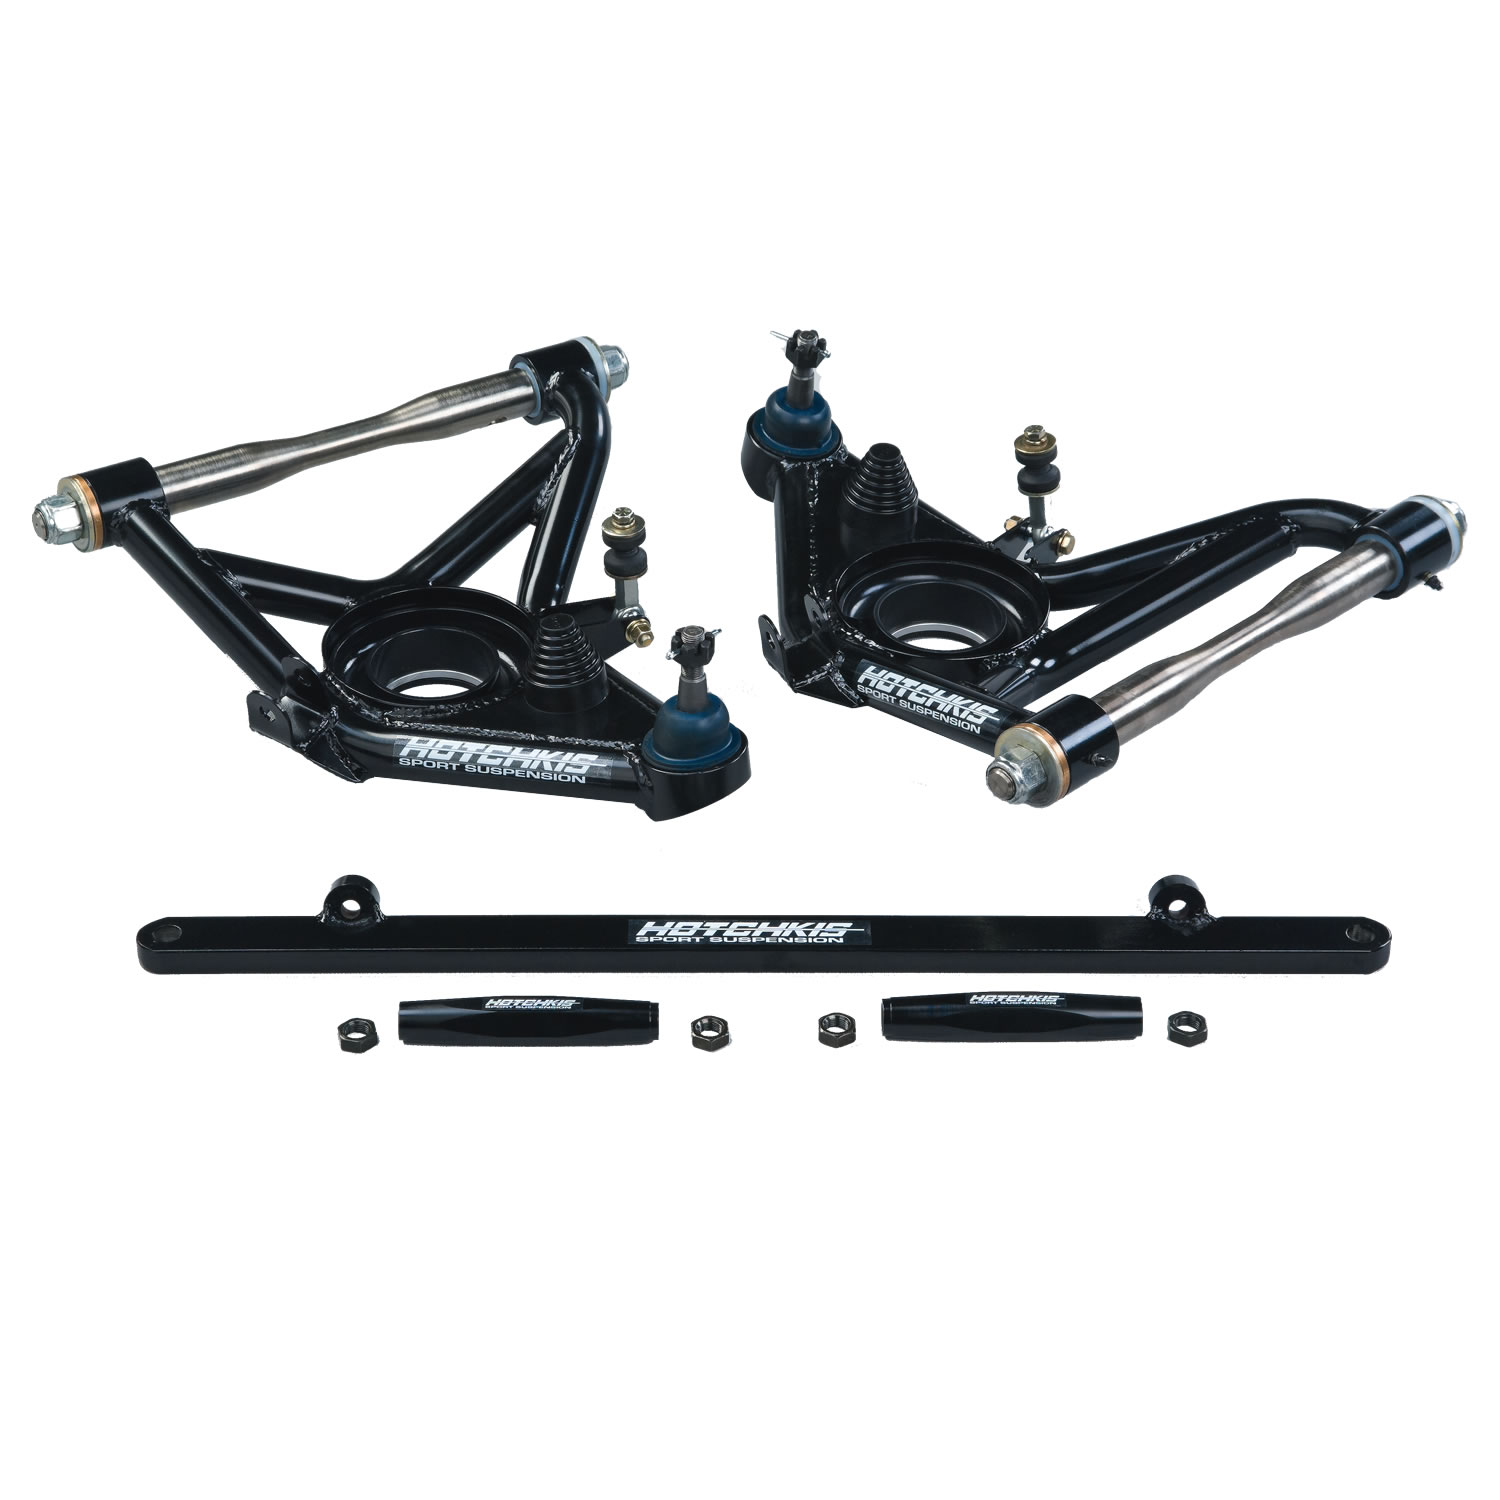 1963-1972 C-10 Tubular Lower Control Arms from Hotchkis Sport Suspension